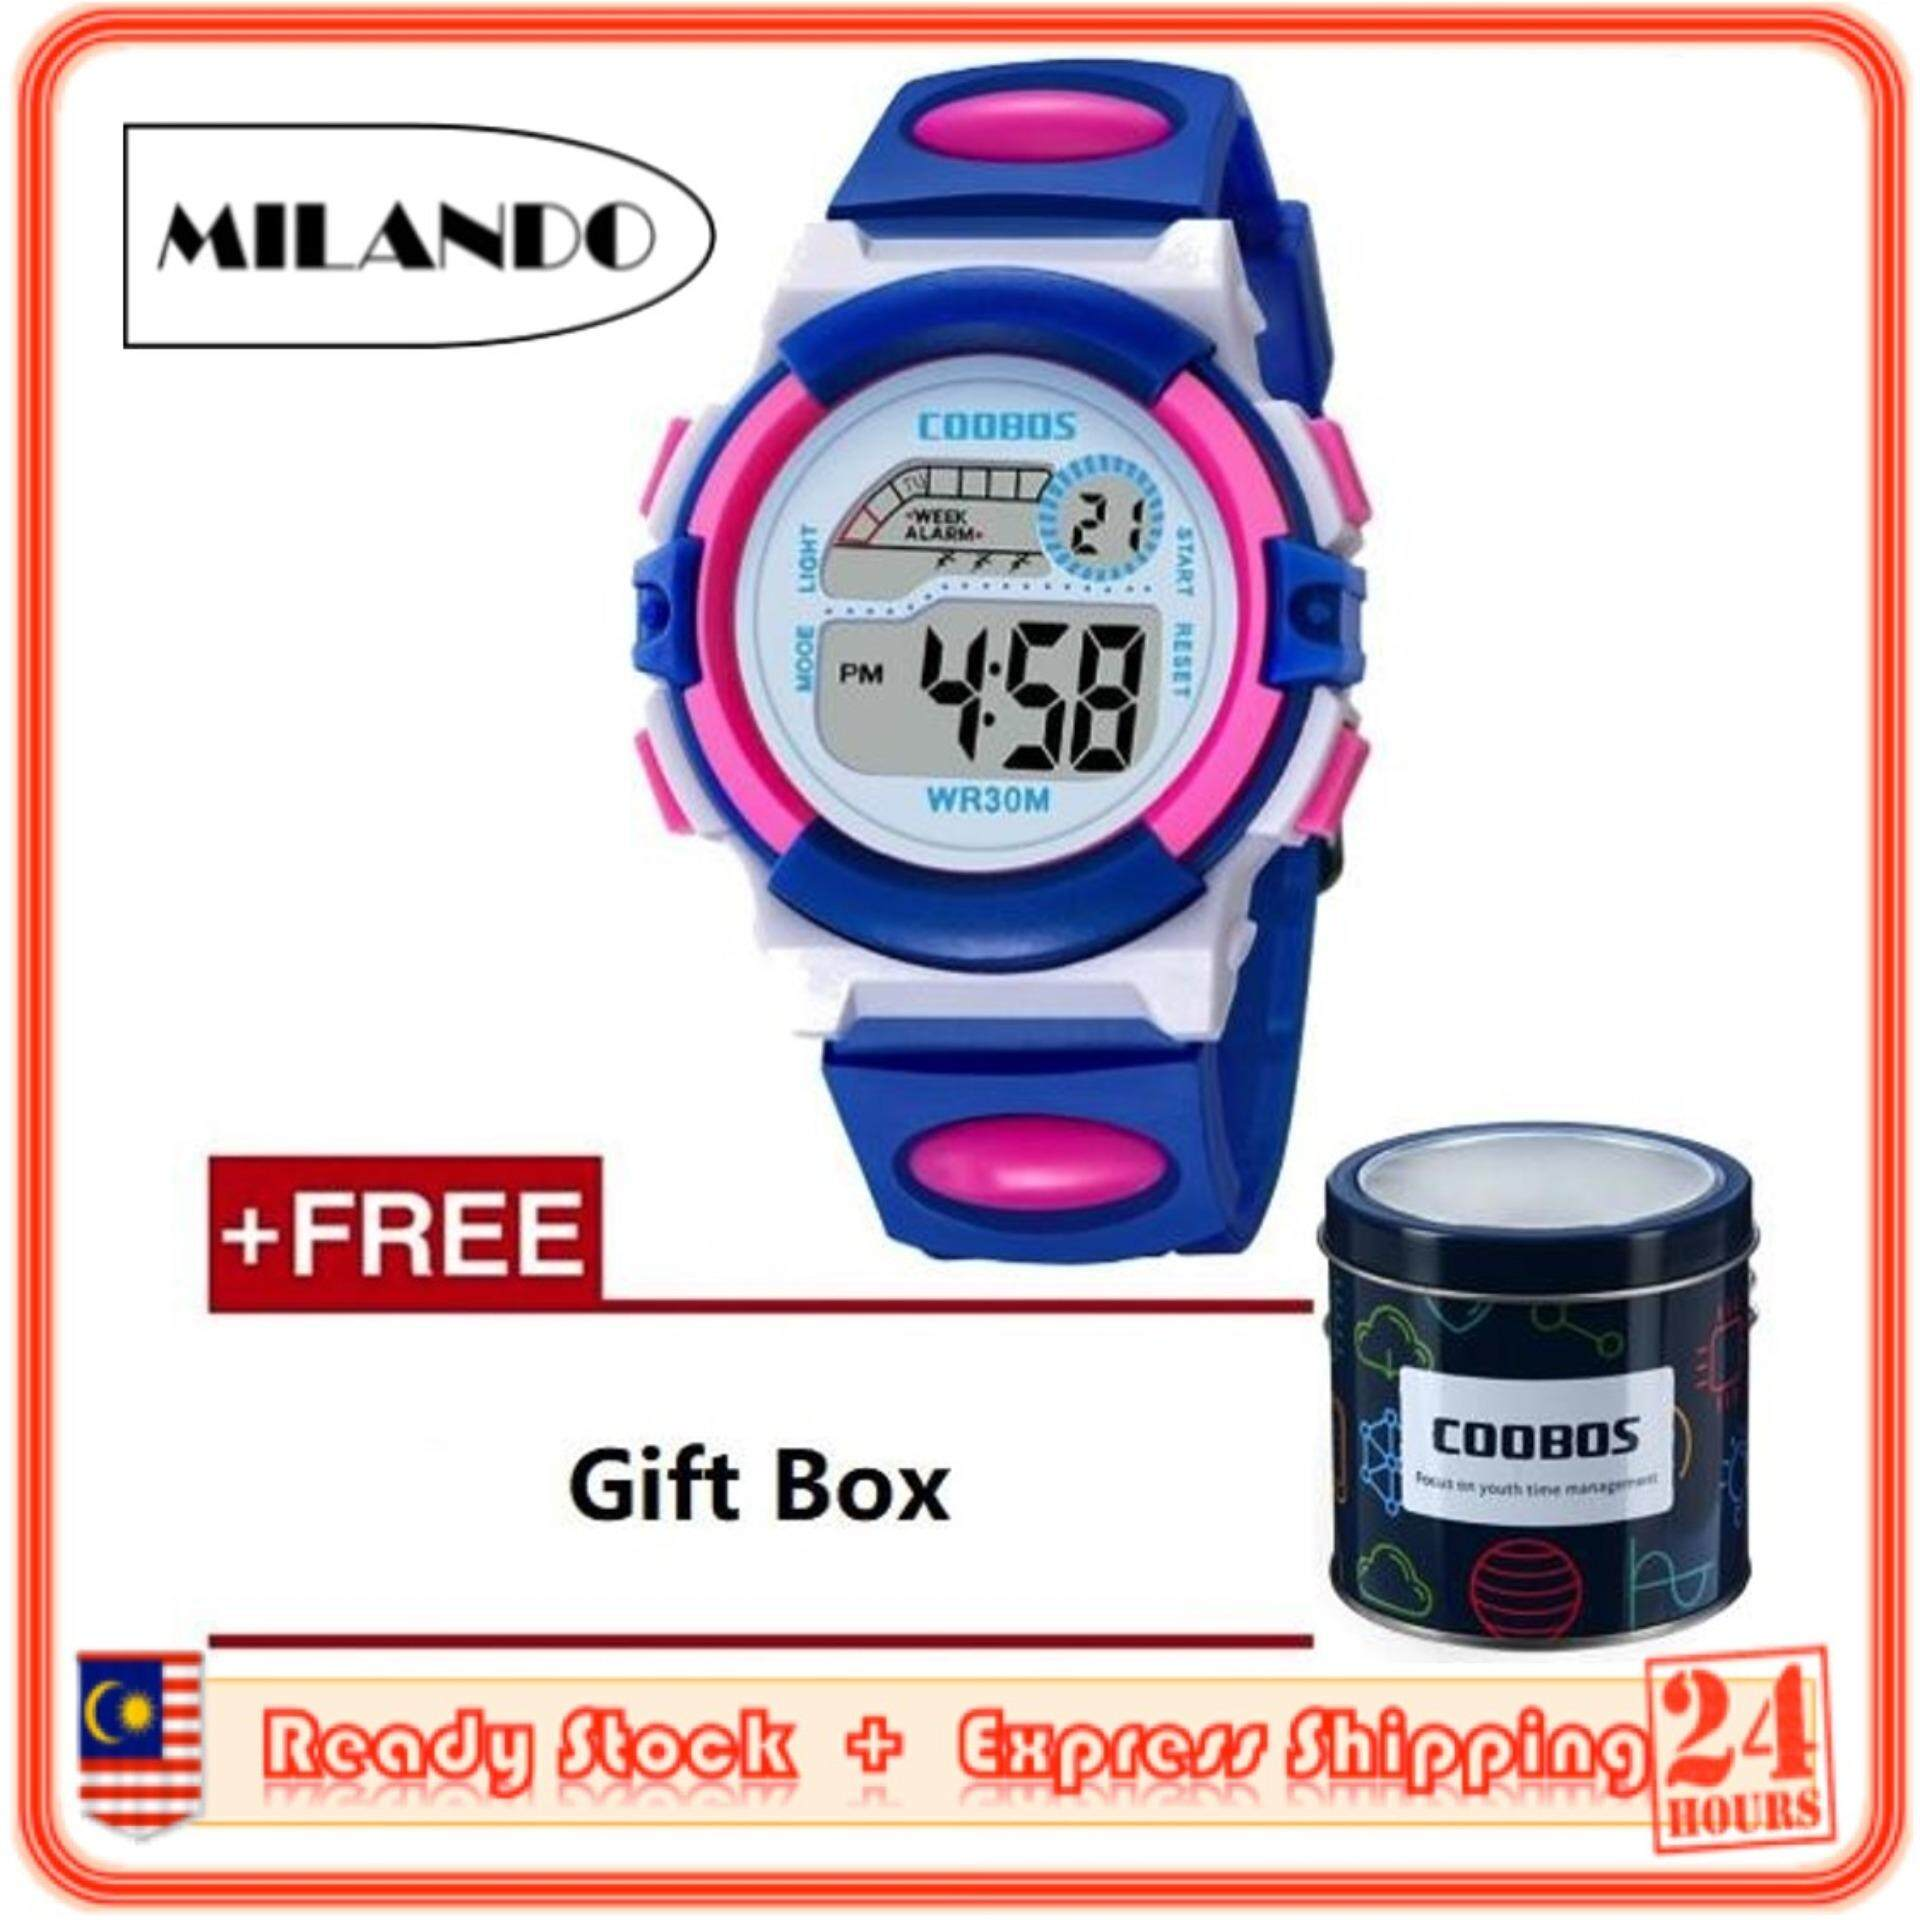 [BDAY SALE] MILANDO Children watches LED Digital Multifunctional 30M Waterproof Outdoor Sports Watch FREE GIFT BOX (Type 1) Malaysia